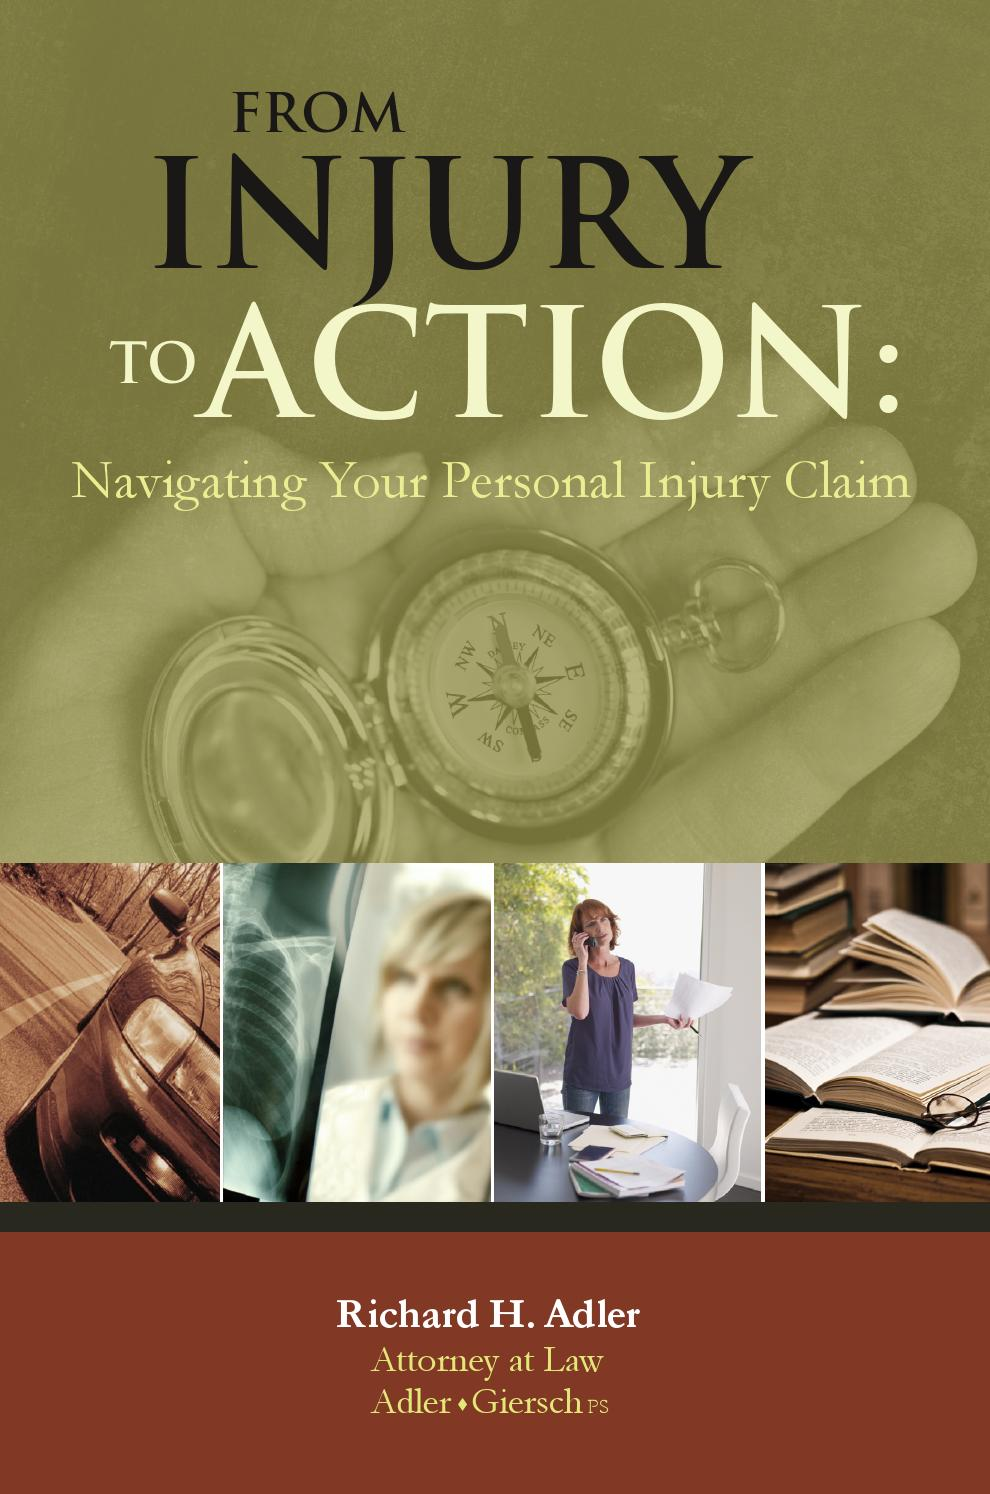 From Injury to Action: Navigating Your Personal Injury Claim by